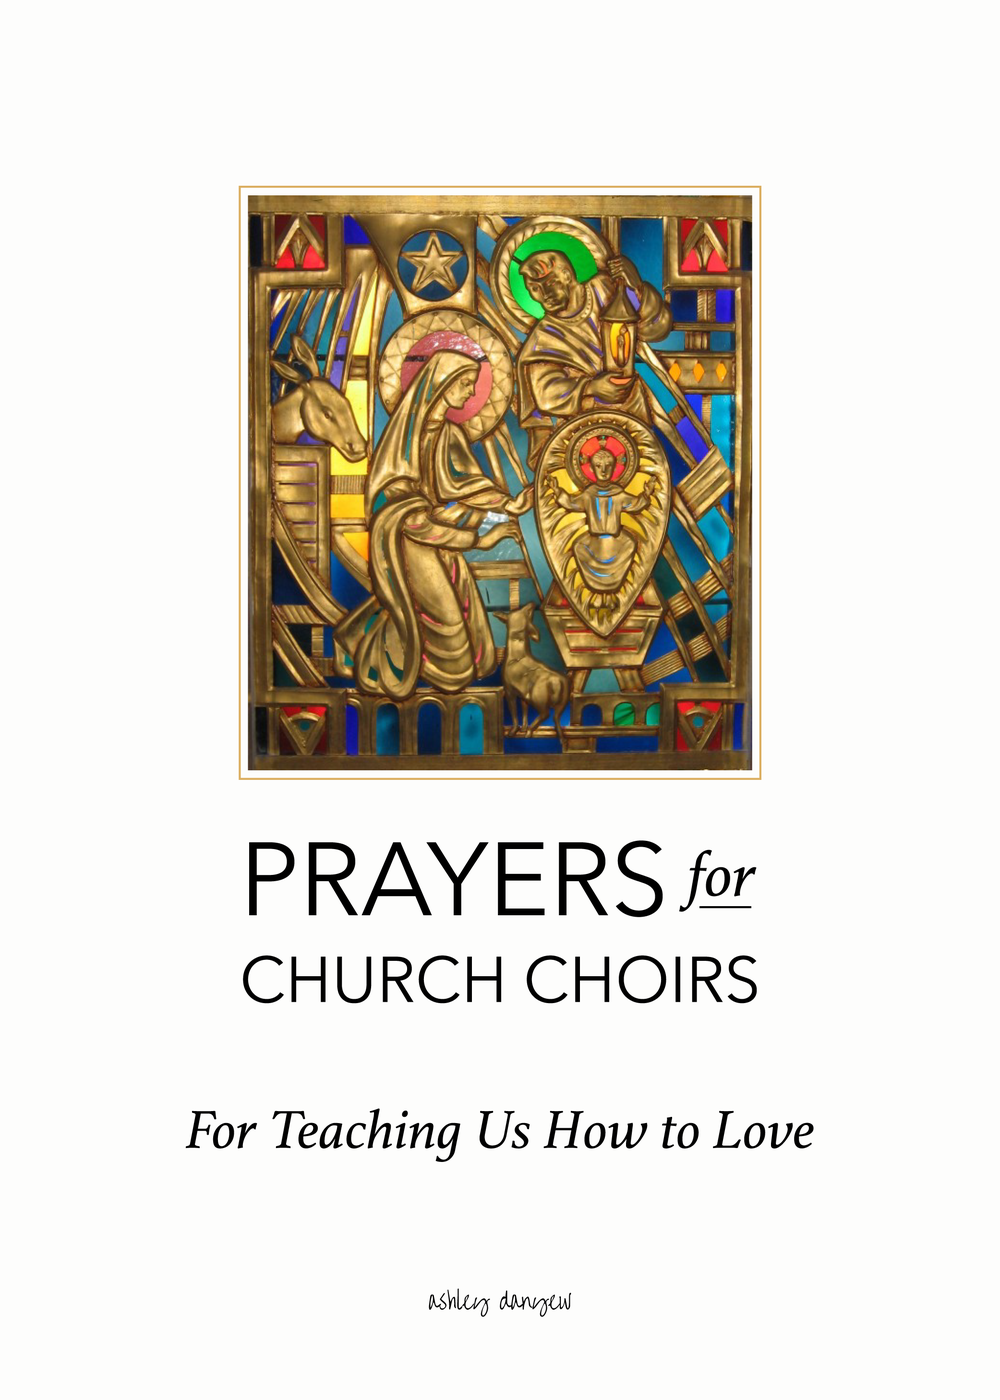 Copy of Prayers for Church Choirs: For Teaching Us How to Love